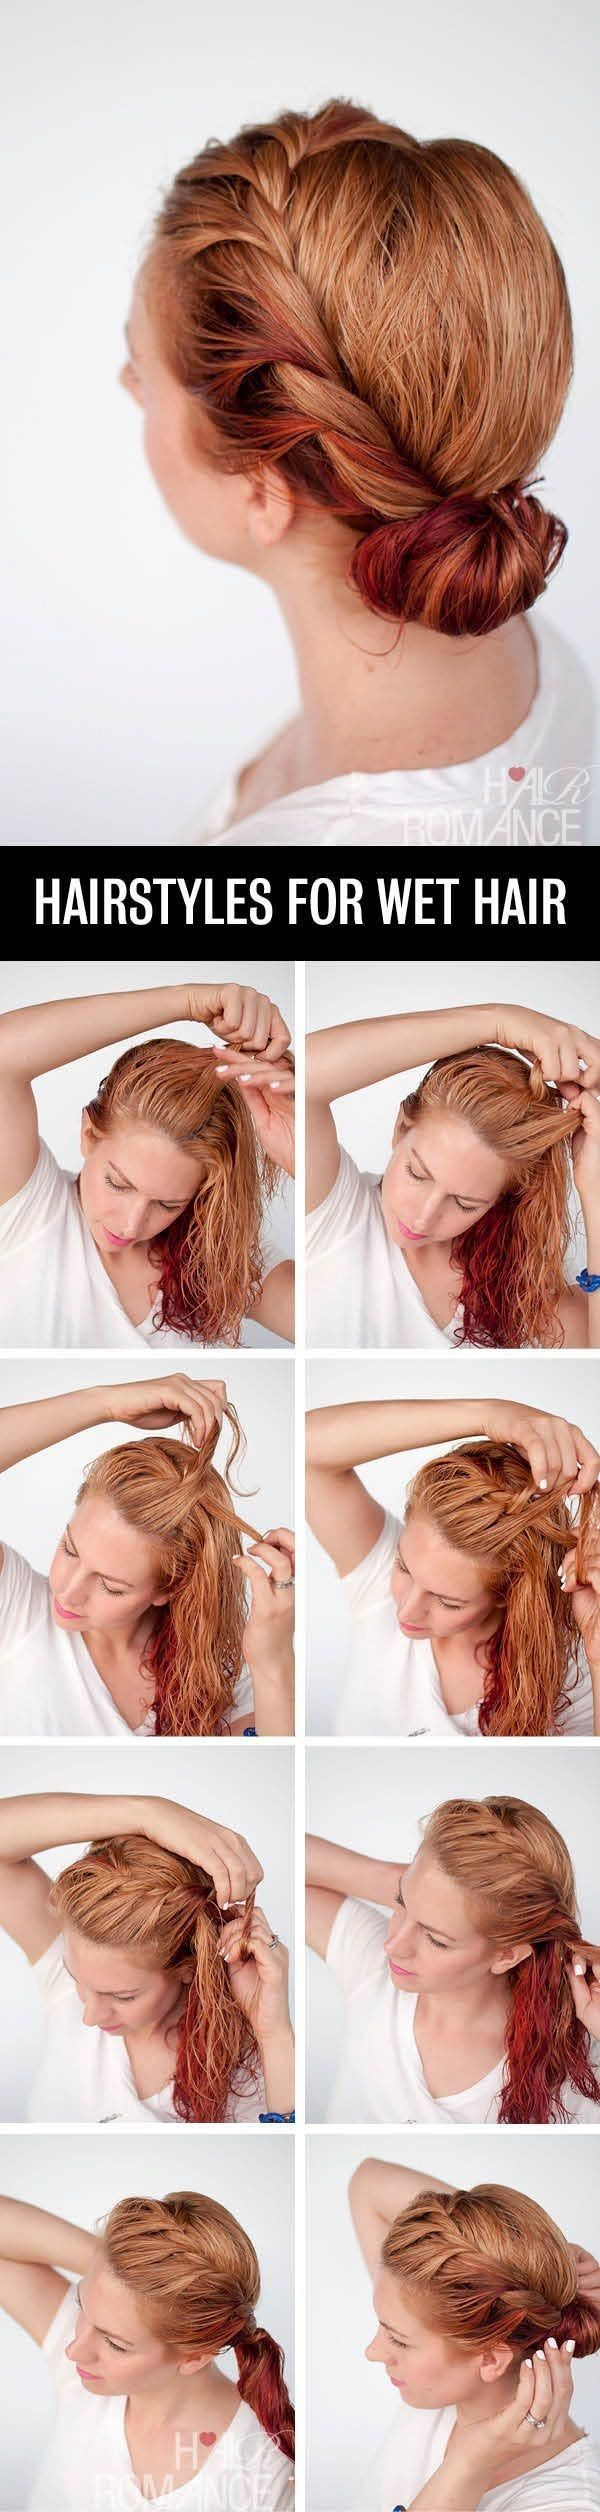 Quick Hairstyle Tutorials For Office Women #hair #hairstyles | www.hairsea.com/...